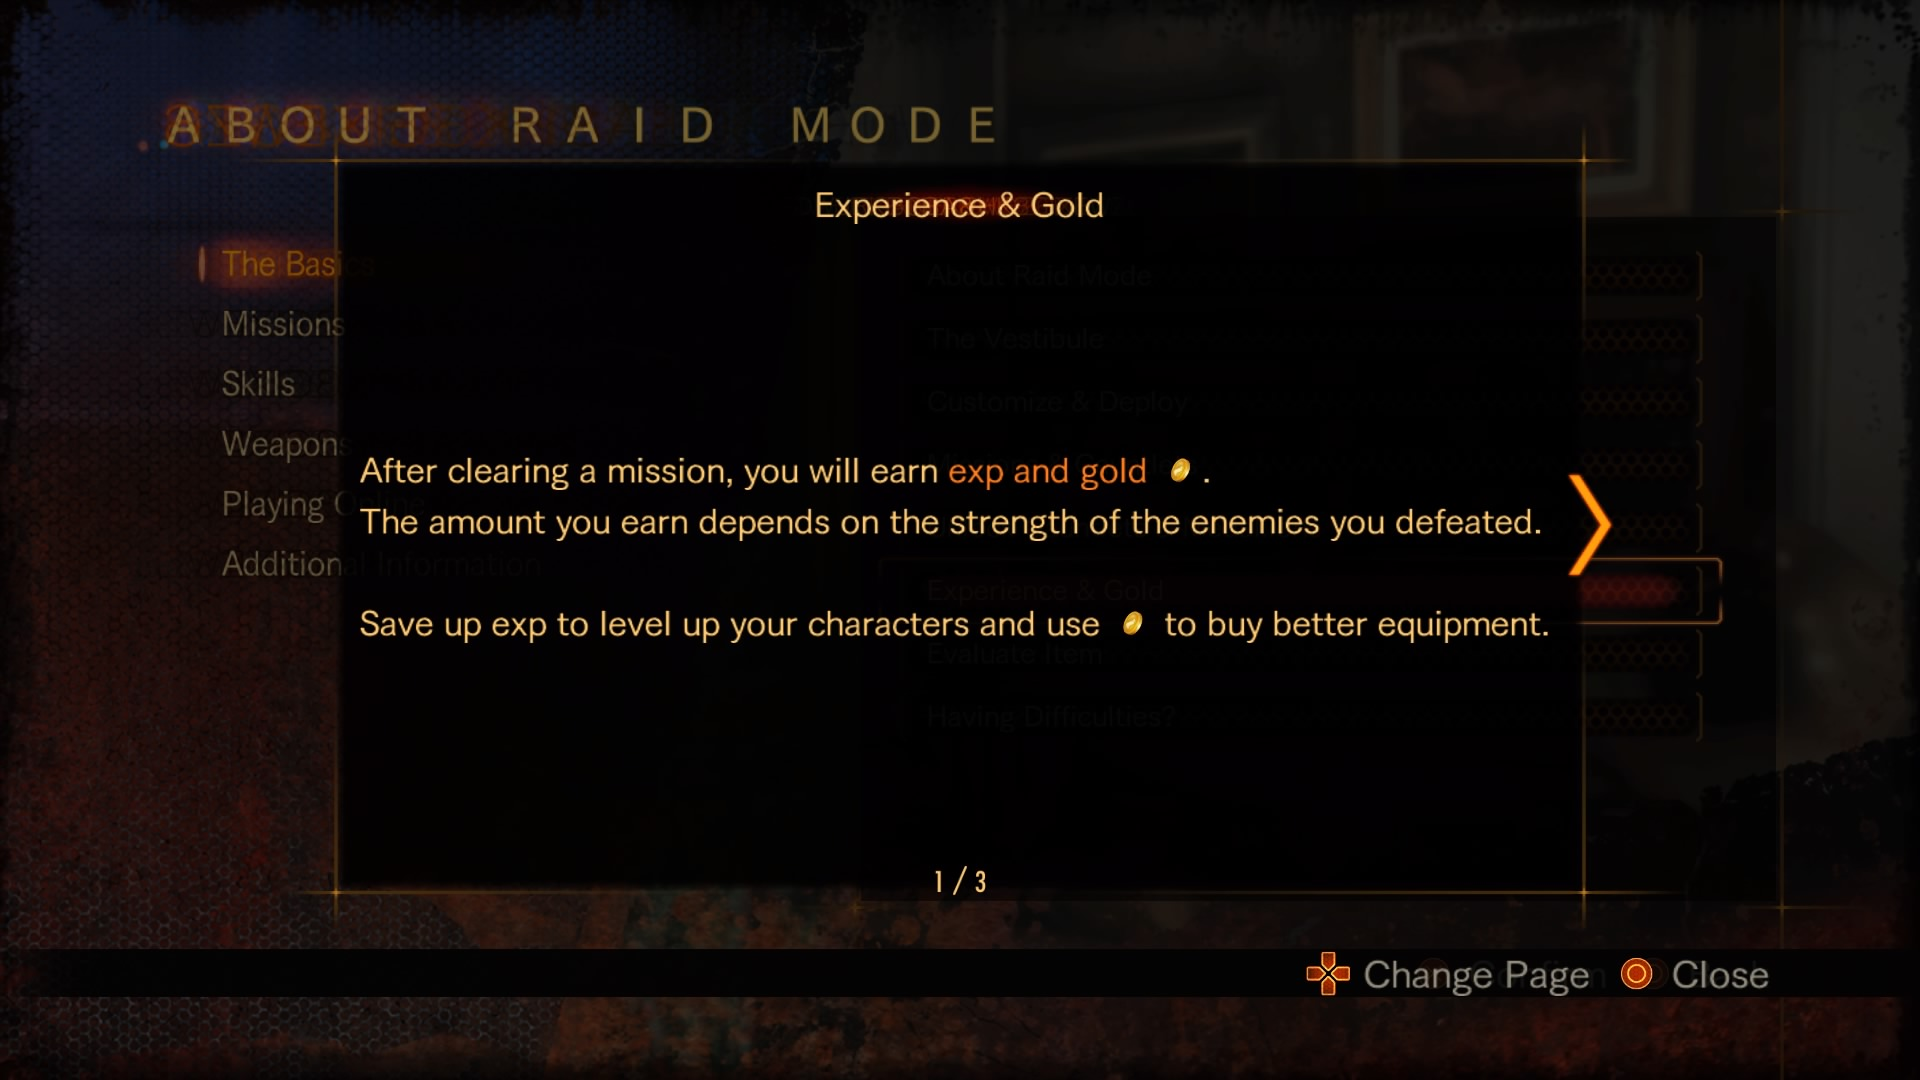 Experience & Gold